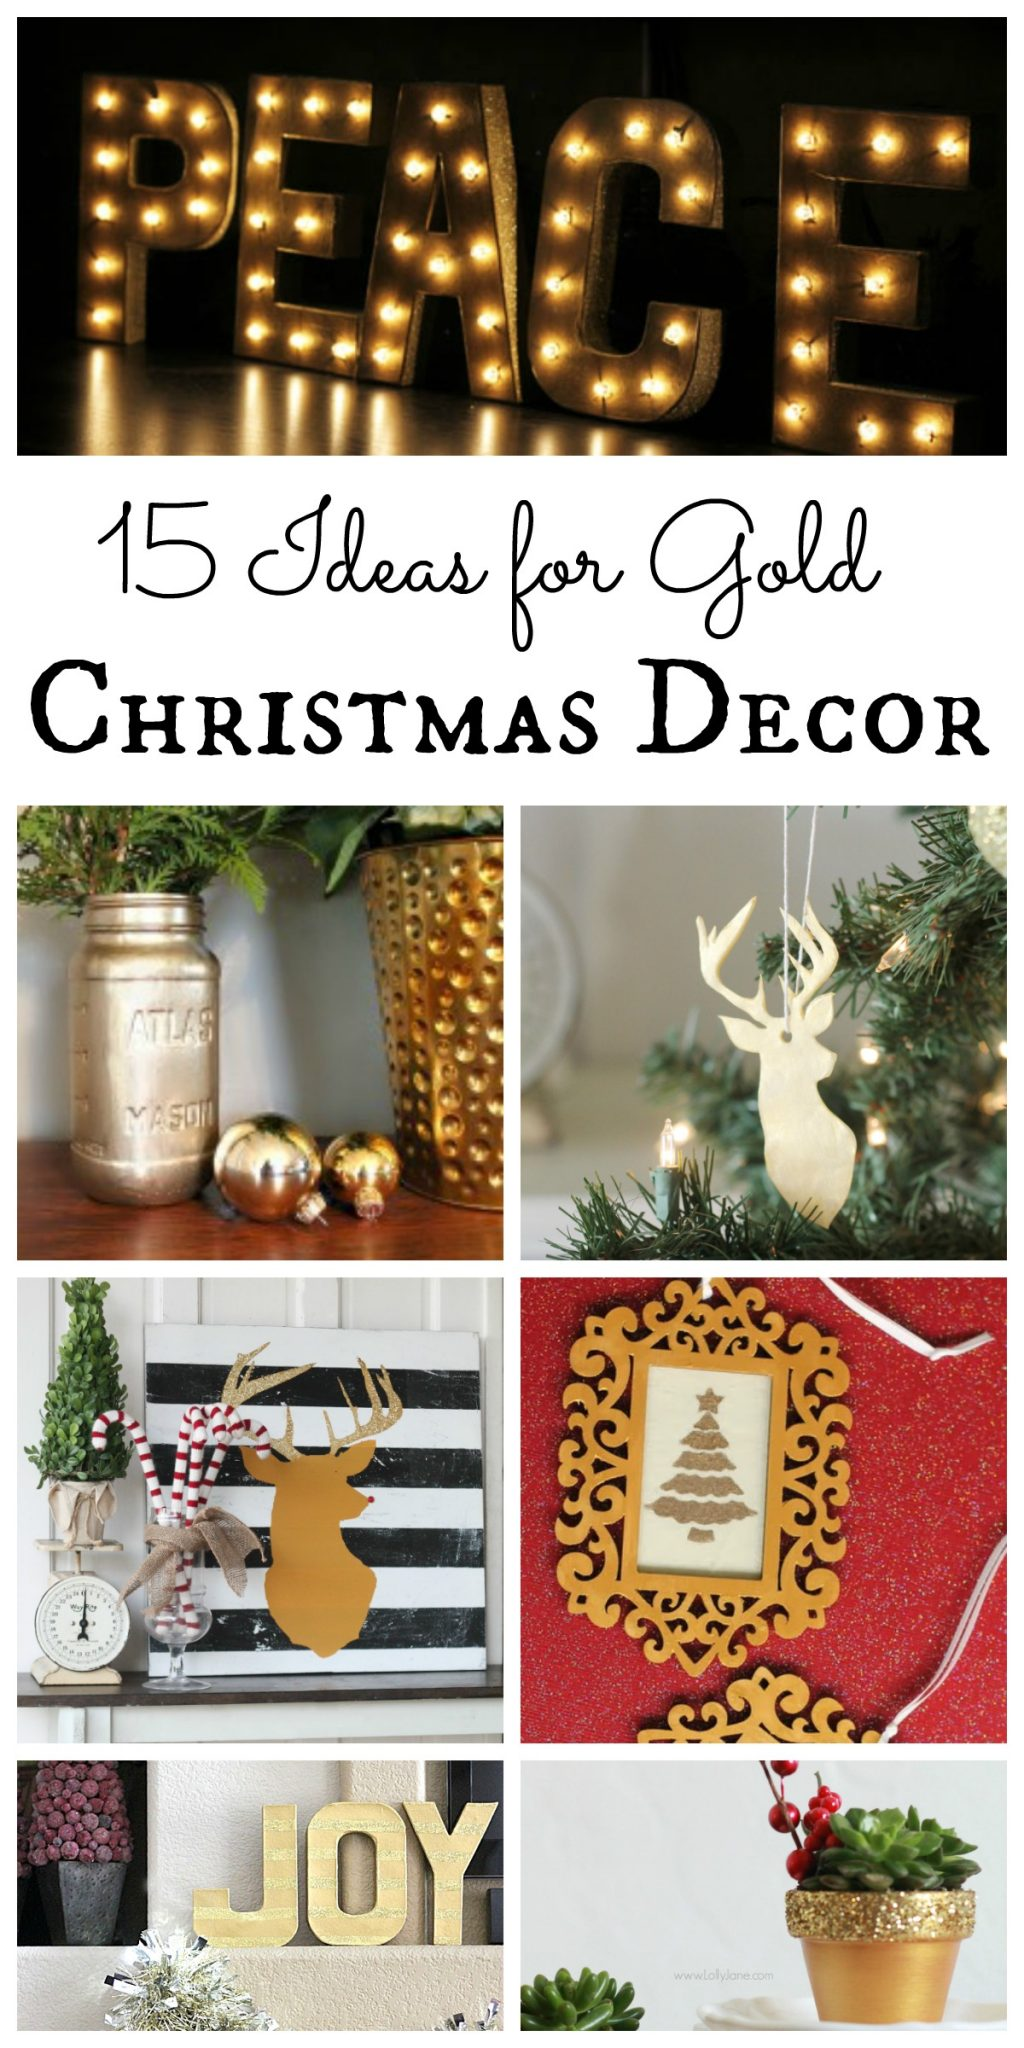 Gold Christmas Decor - The Country Chic Cottage